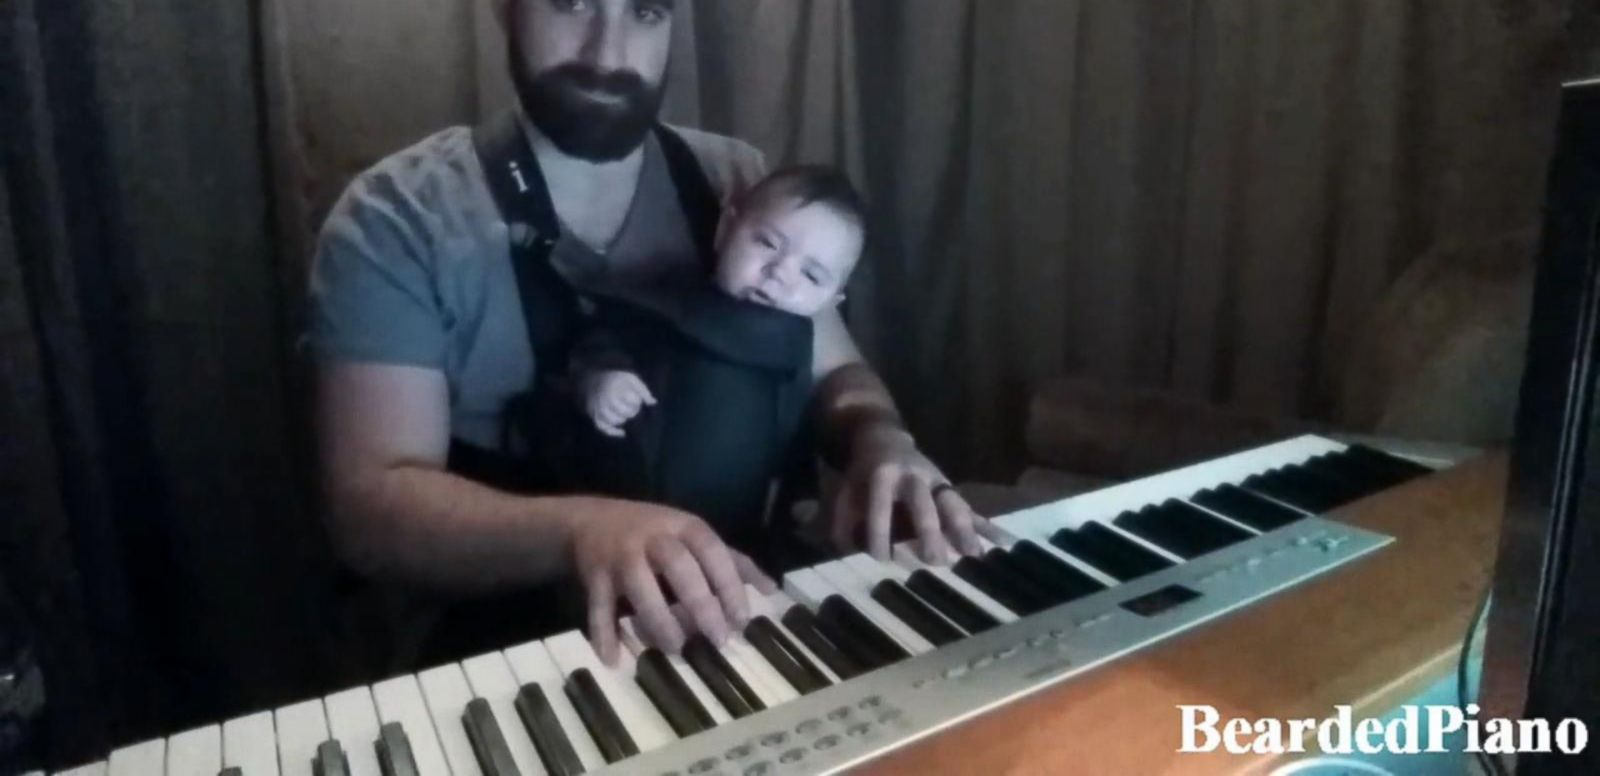 VIDEO: Dad's Piano-Playing Lullaby Soothes Baby Boy to Sleep